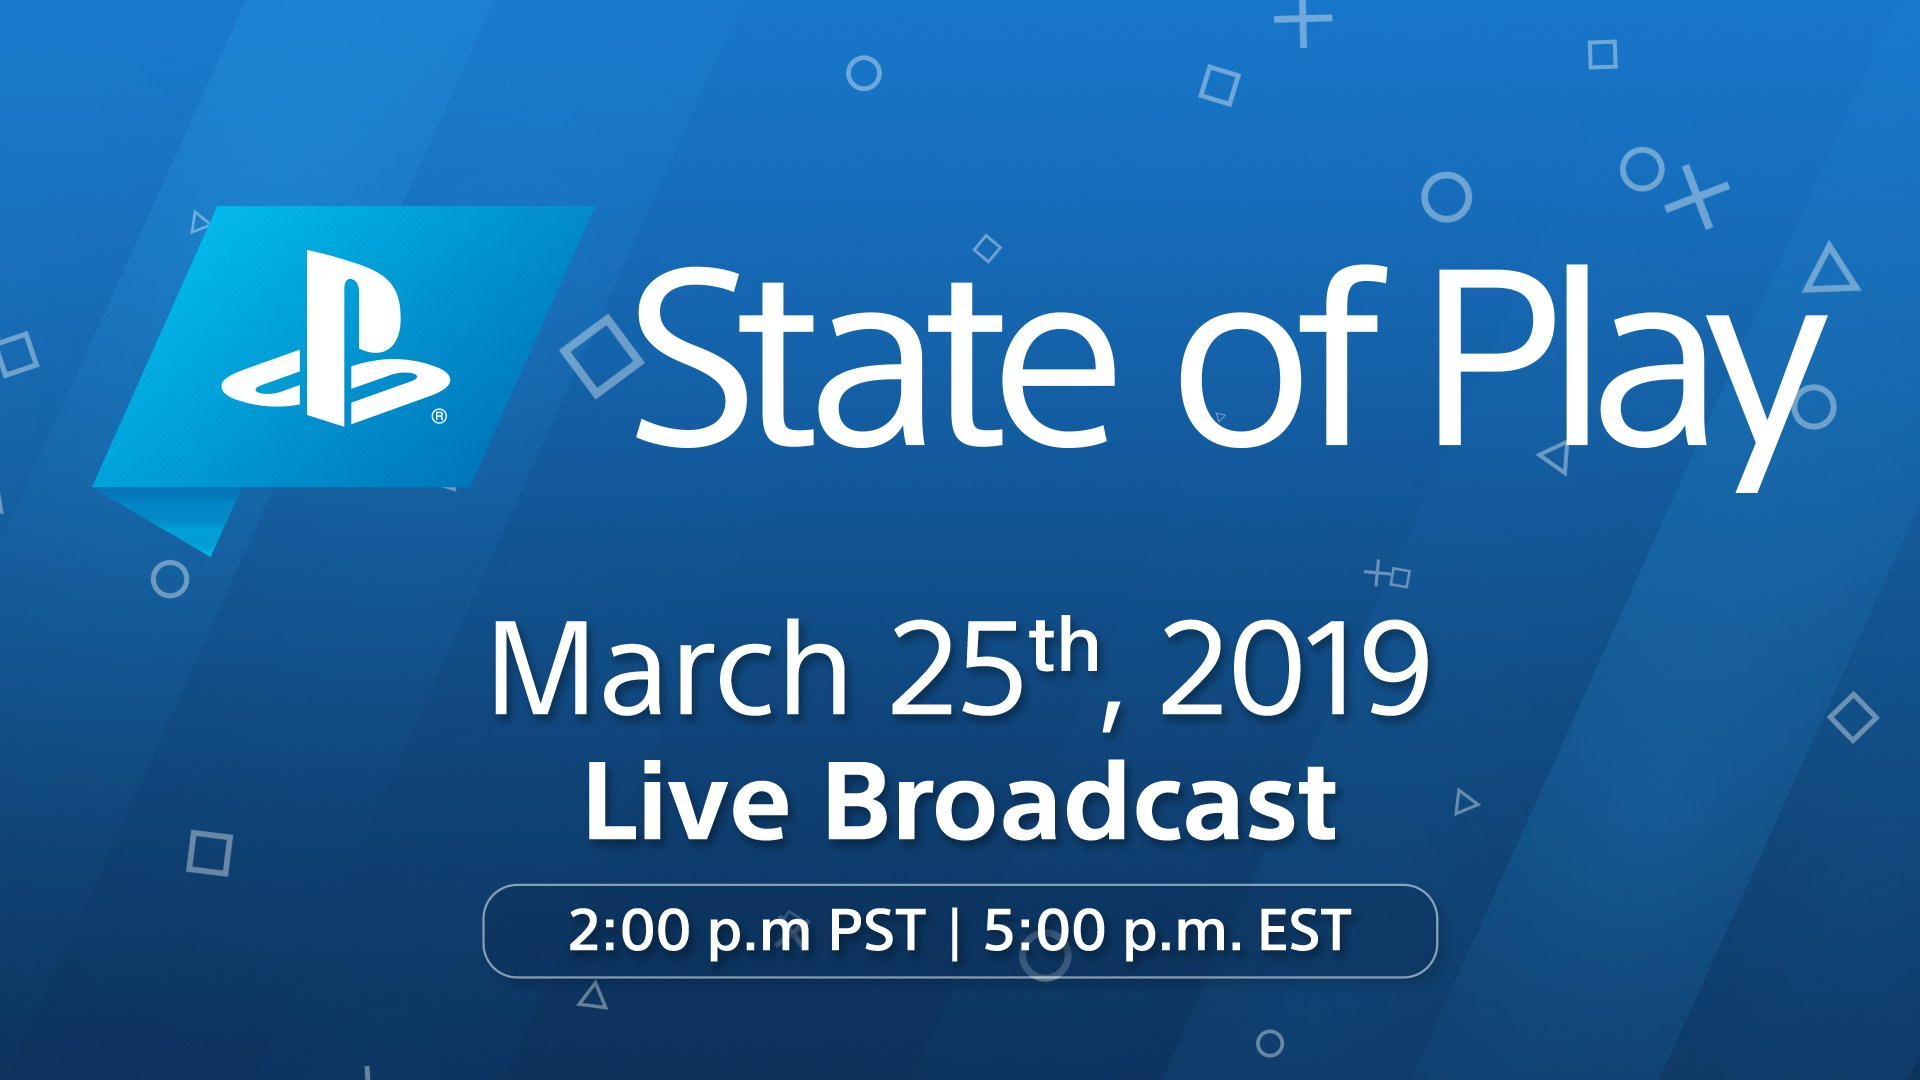 Tune in at 2 PM PT to watch PlayStation's State of Play live: https://t.co/jwYkptDygj https://t.co/R8Na1ORiq3